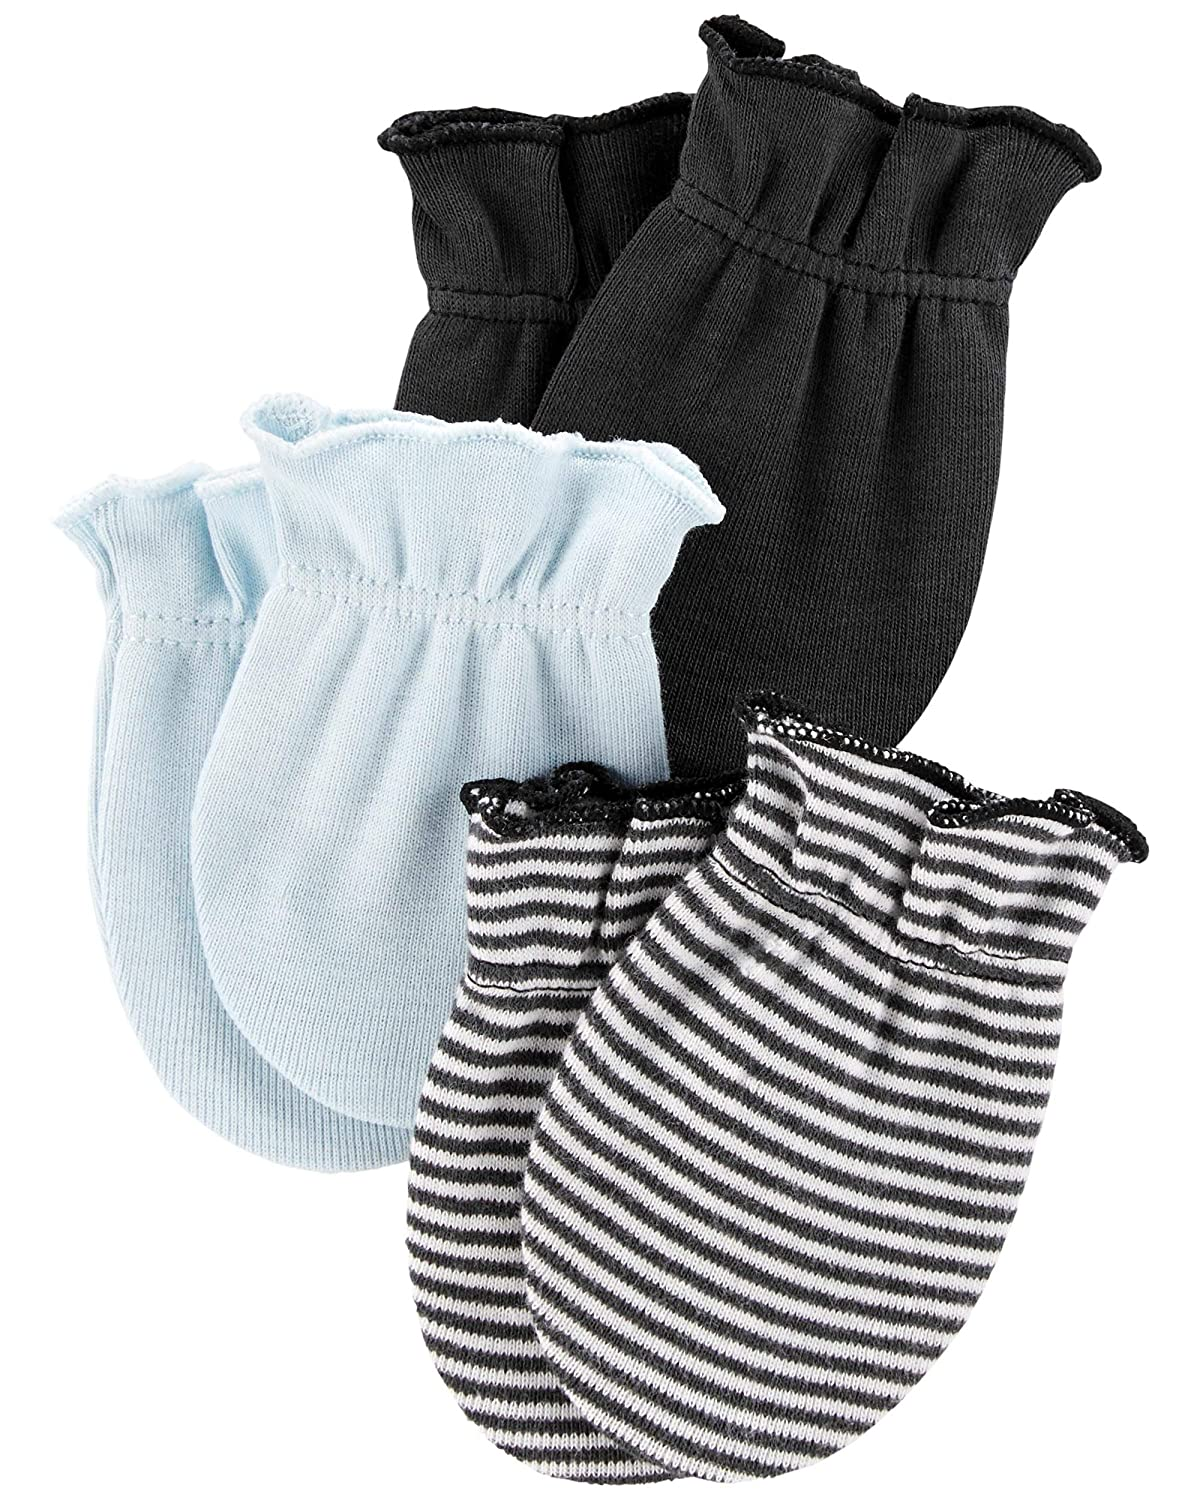 Carter's Baby Boys' 3 Pack Mittens, Blue/Gray, 0-3 Months